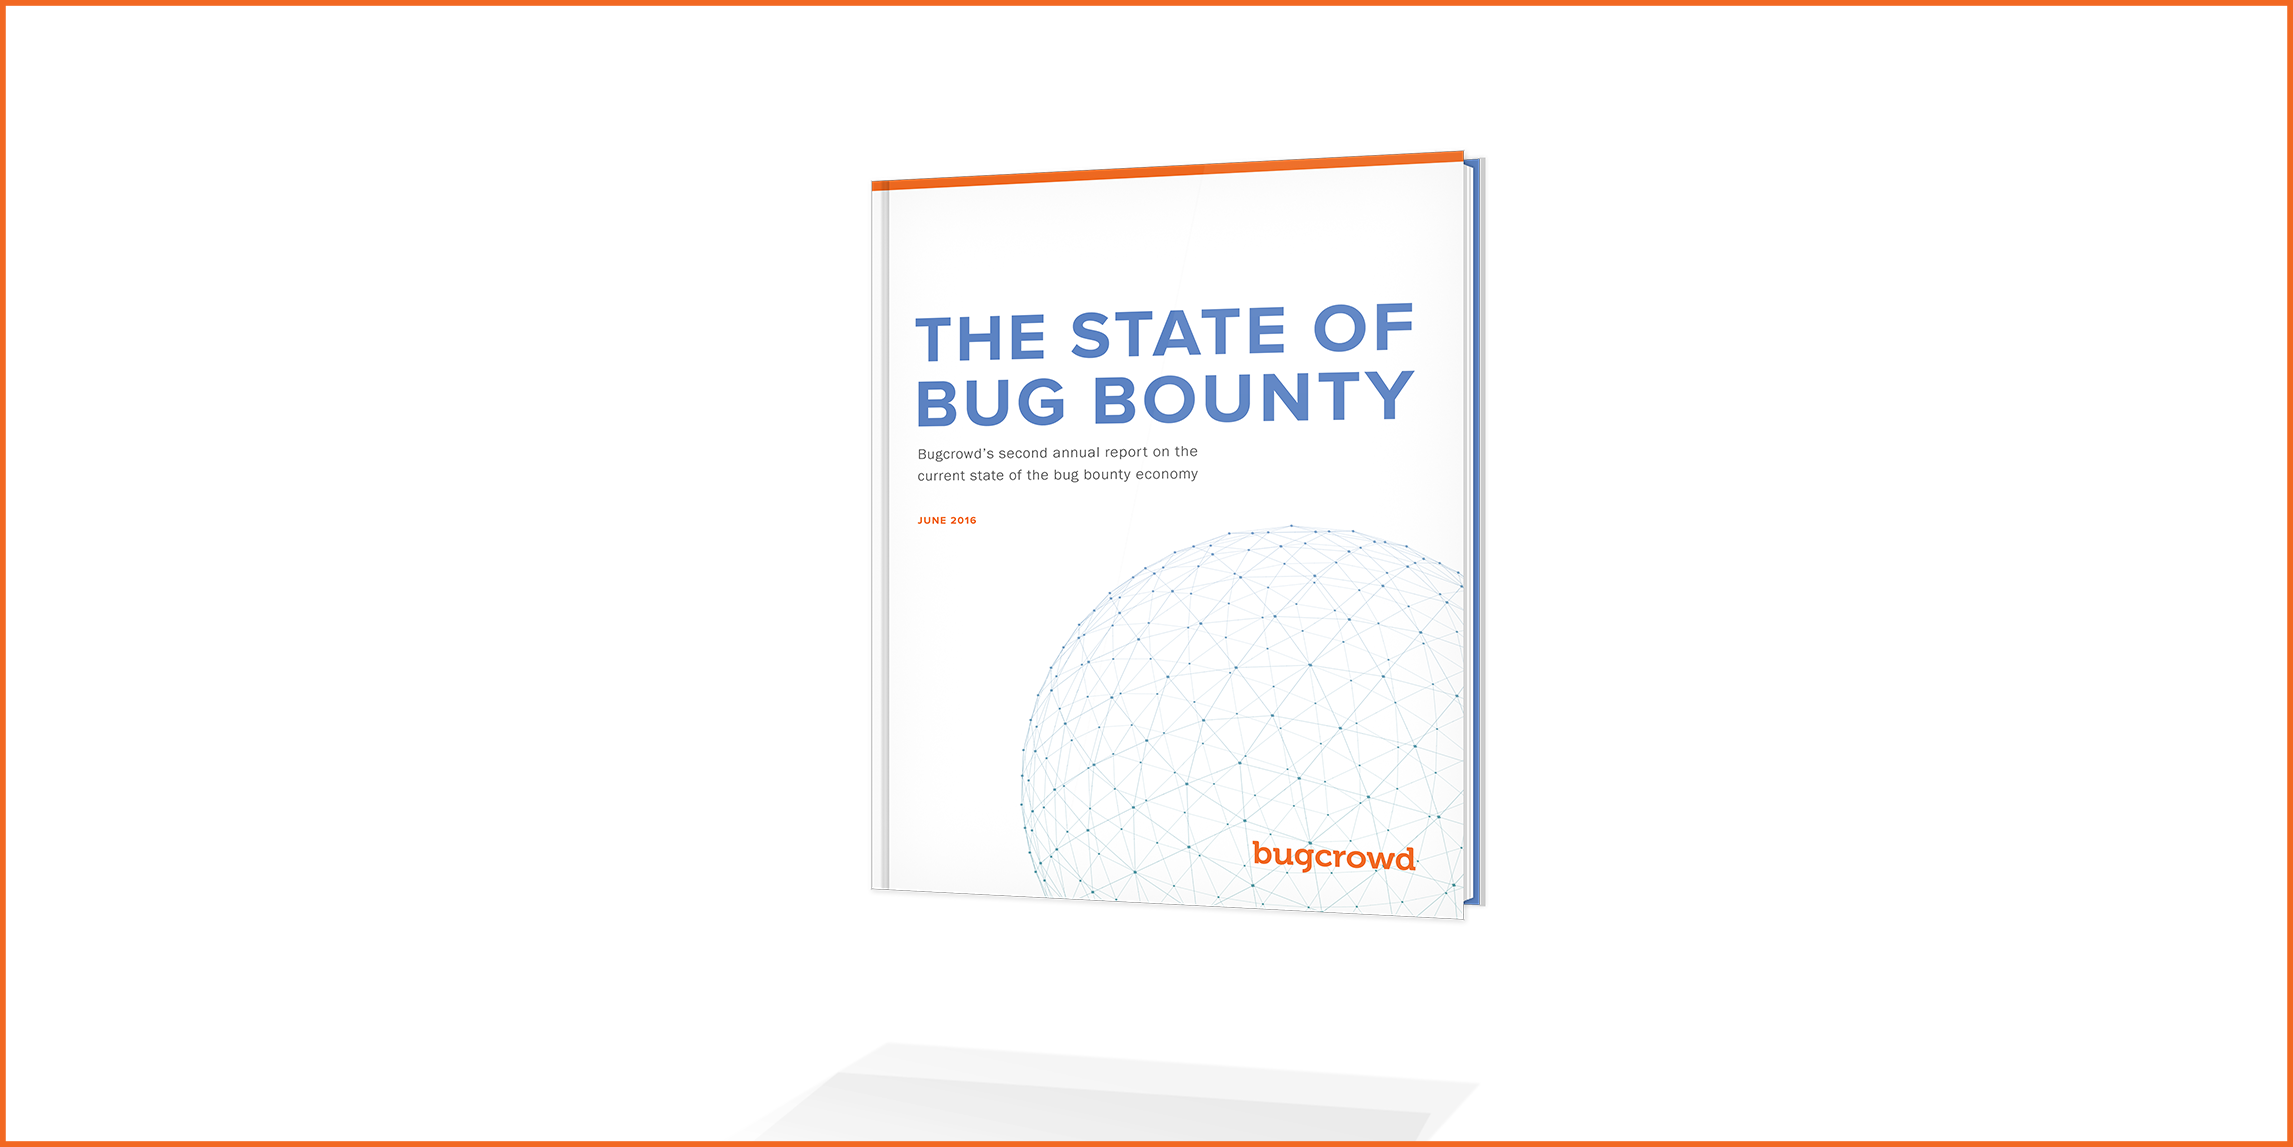 Bug Bounty Report Card: Bugcrowd's Latest Findings Reveal Industry Diversification and Growth Over Time